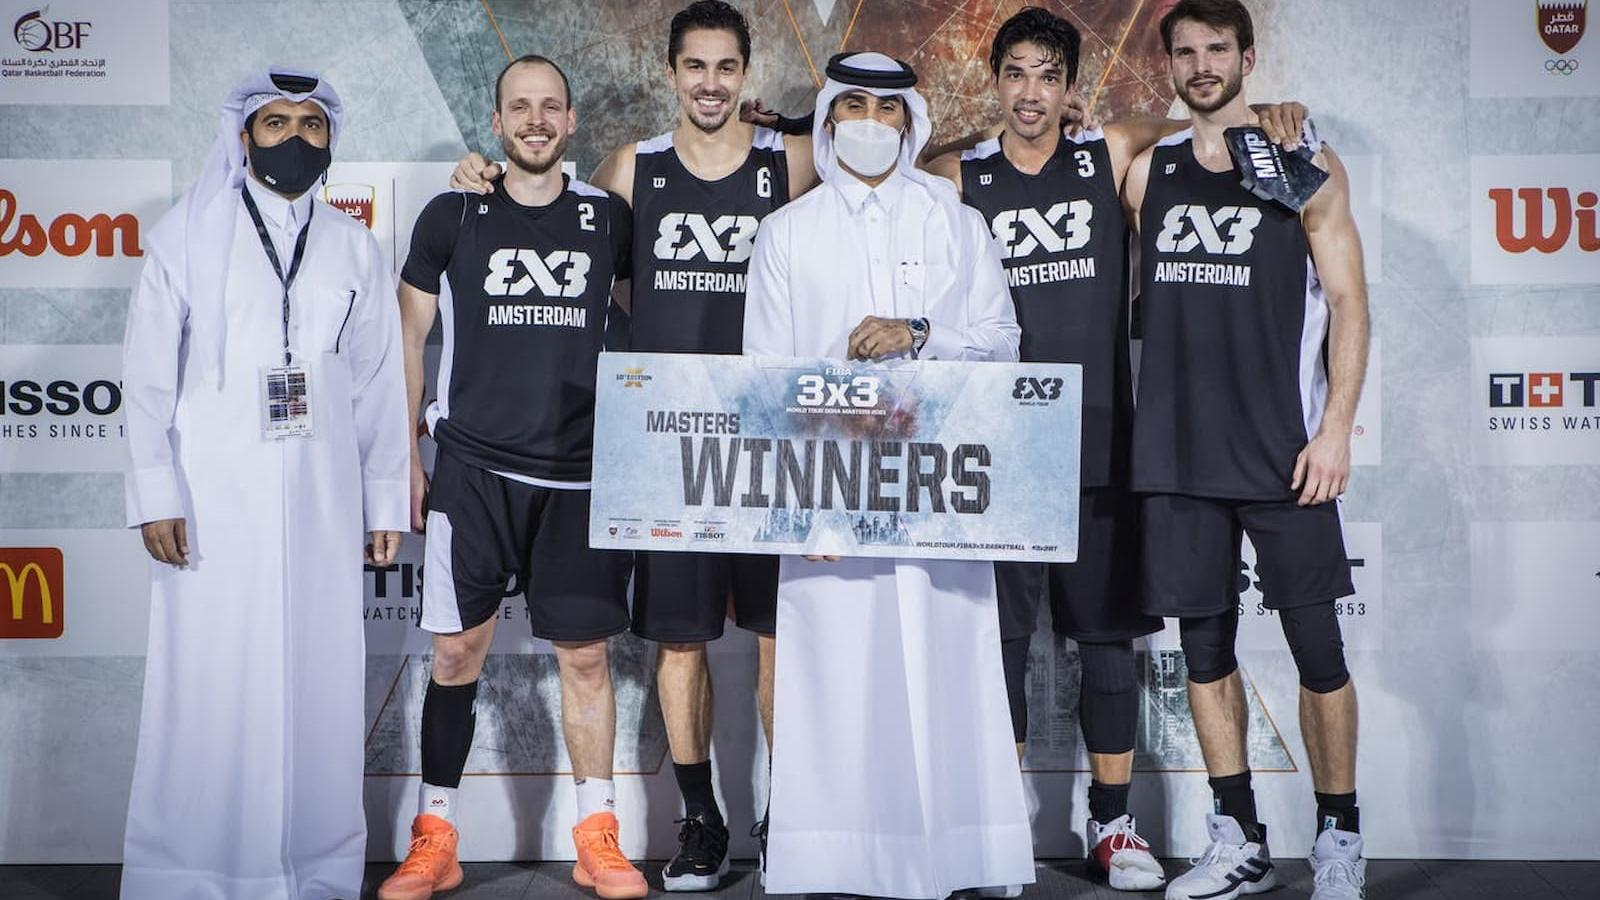 Kovacevic's buzzer-beater gives Amsterdam Talent & Pro first-ever Masters win at FIBA 3x3 World Tour Doha Masters 2021